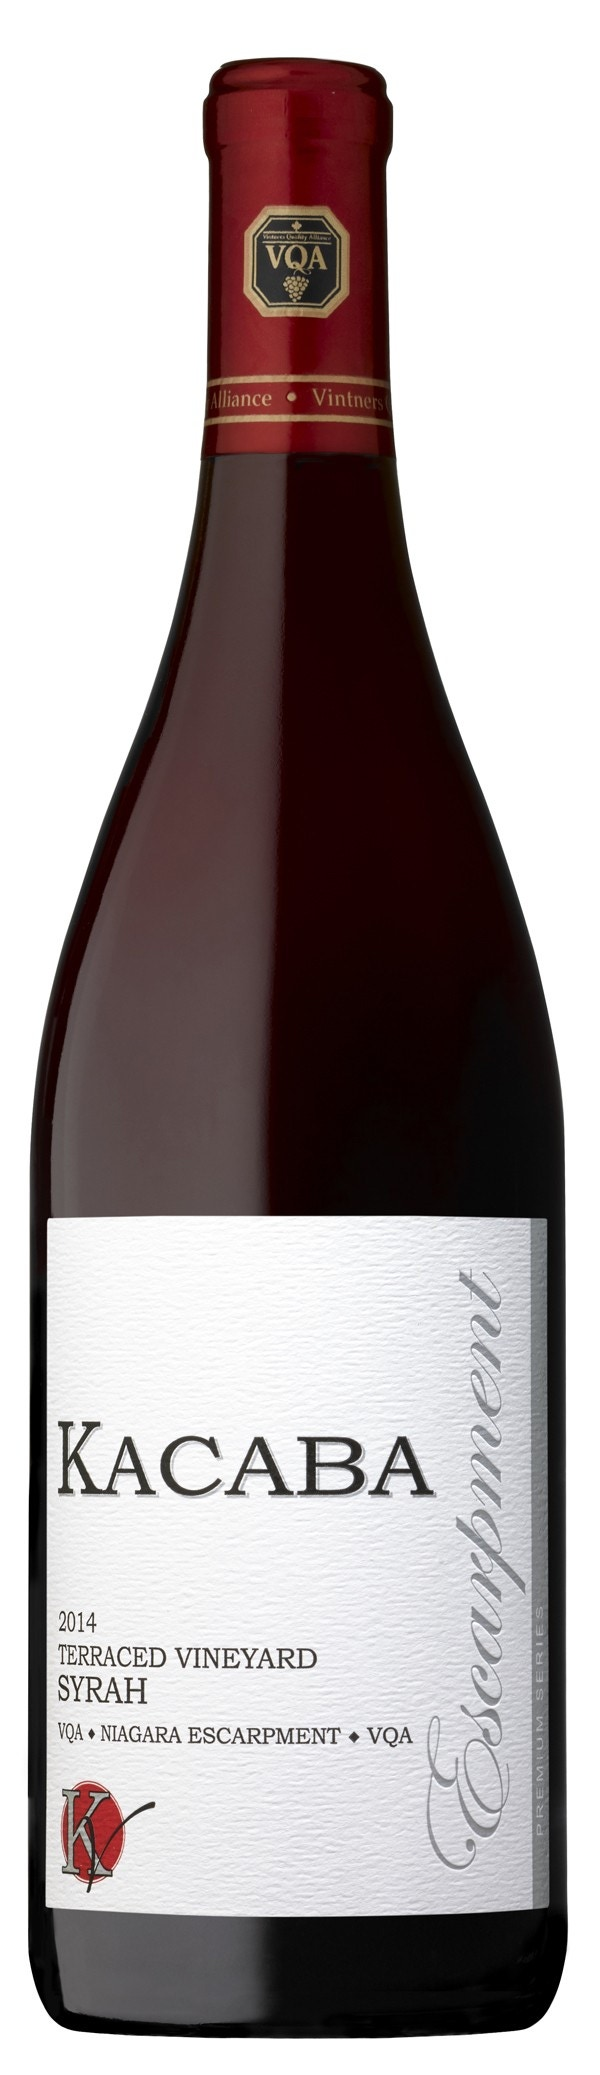 Terrace Vineyard Syrah